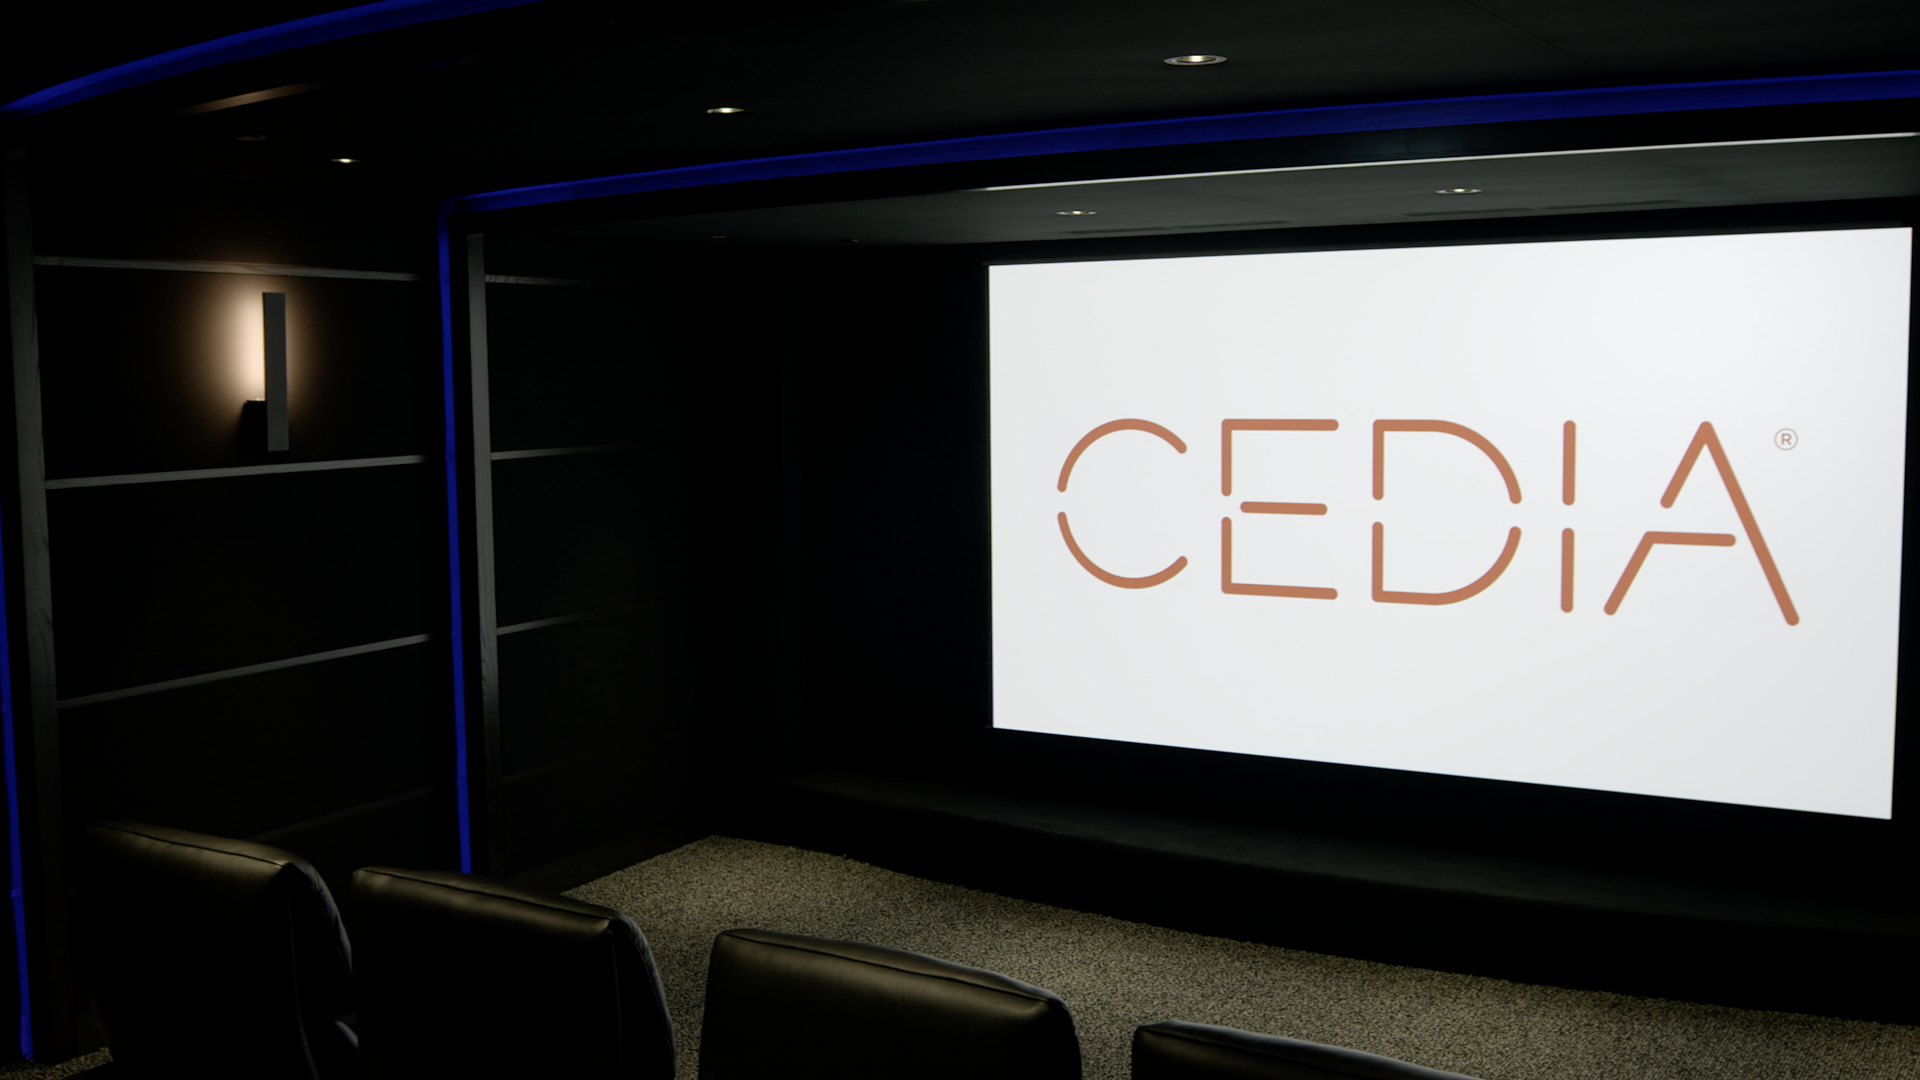 CEDIA on screen looking from right to left side of theater